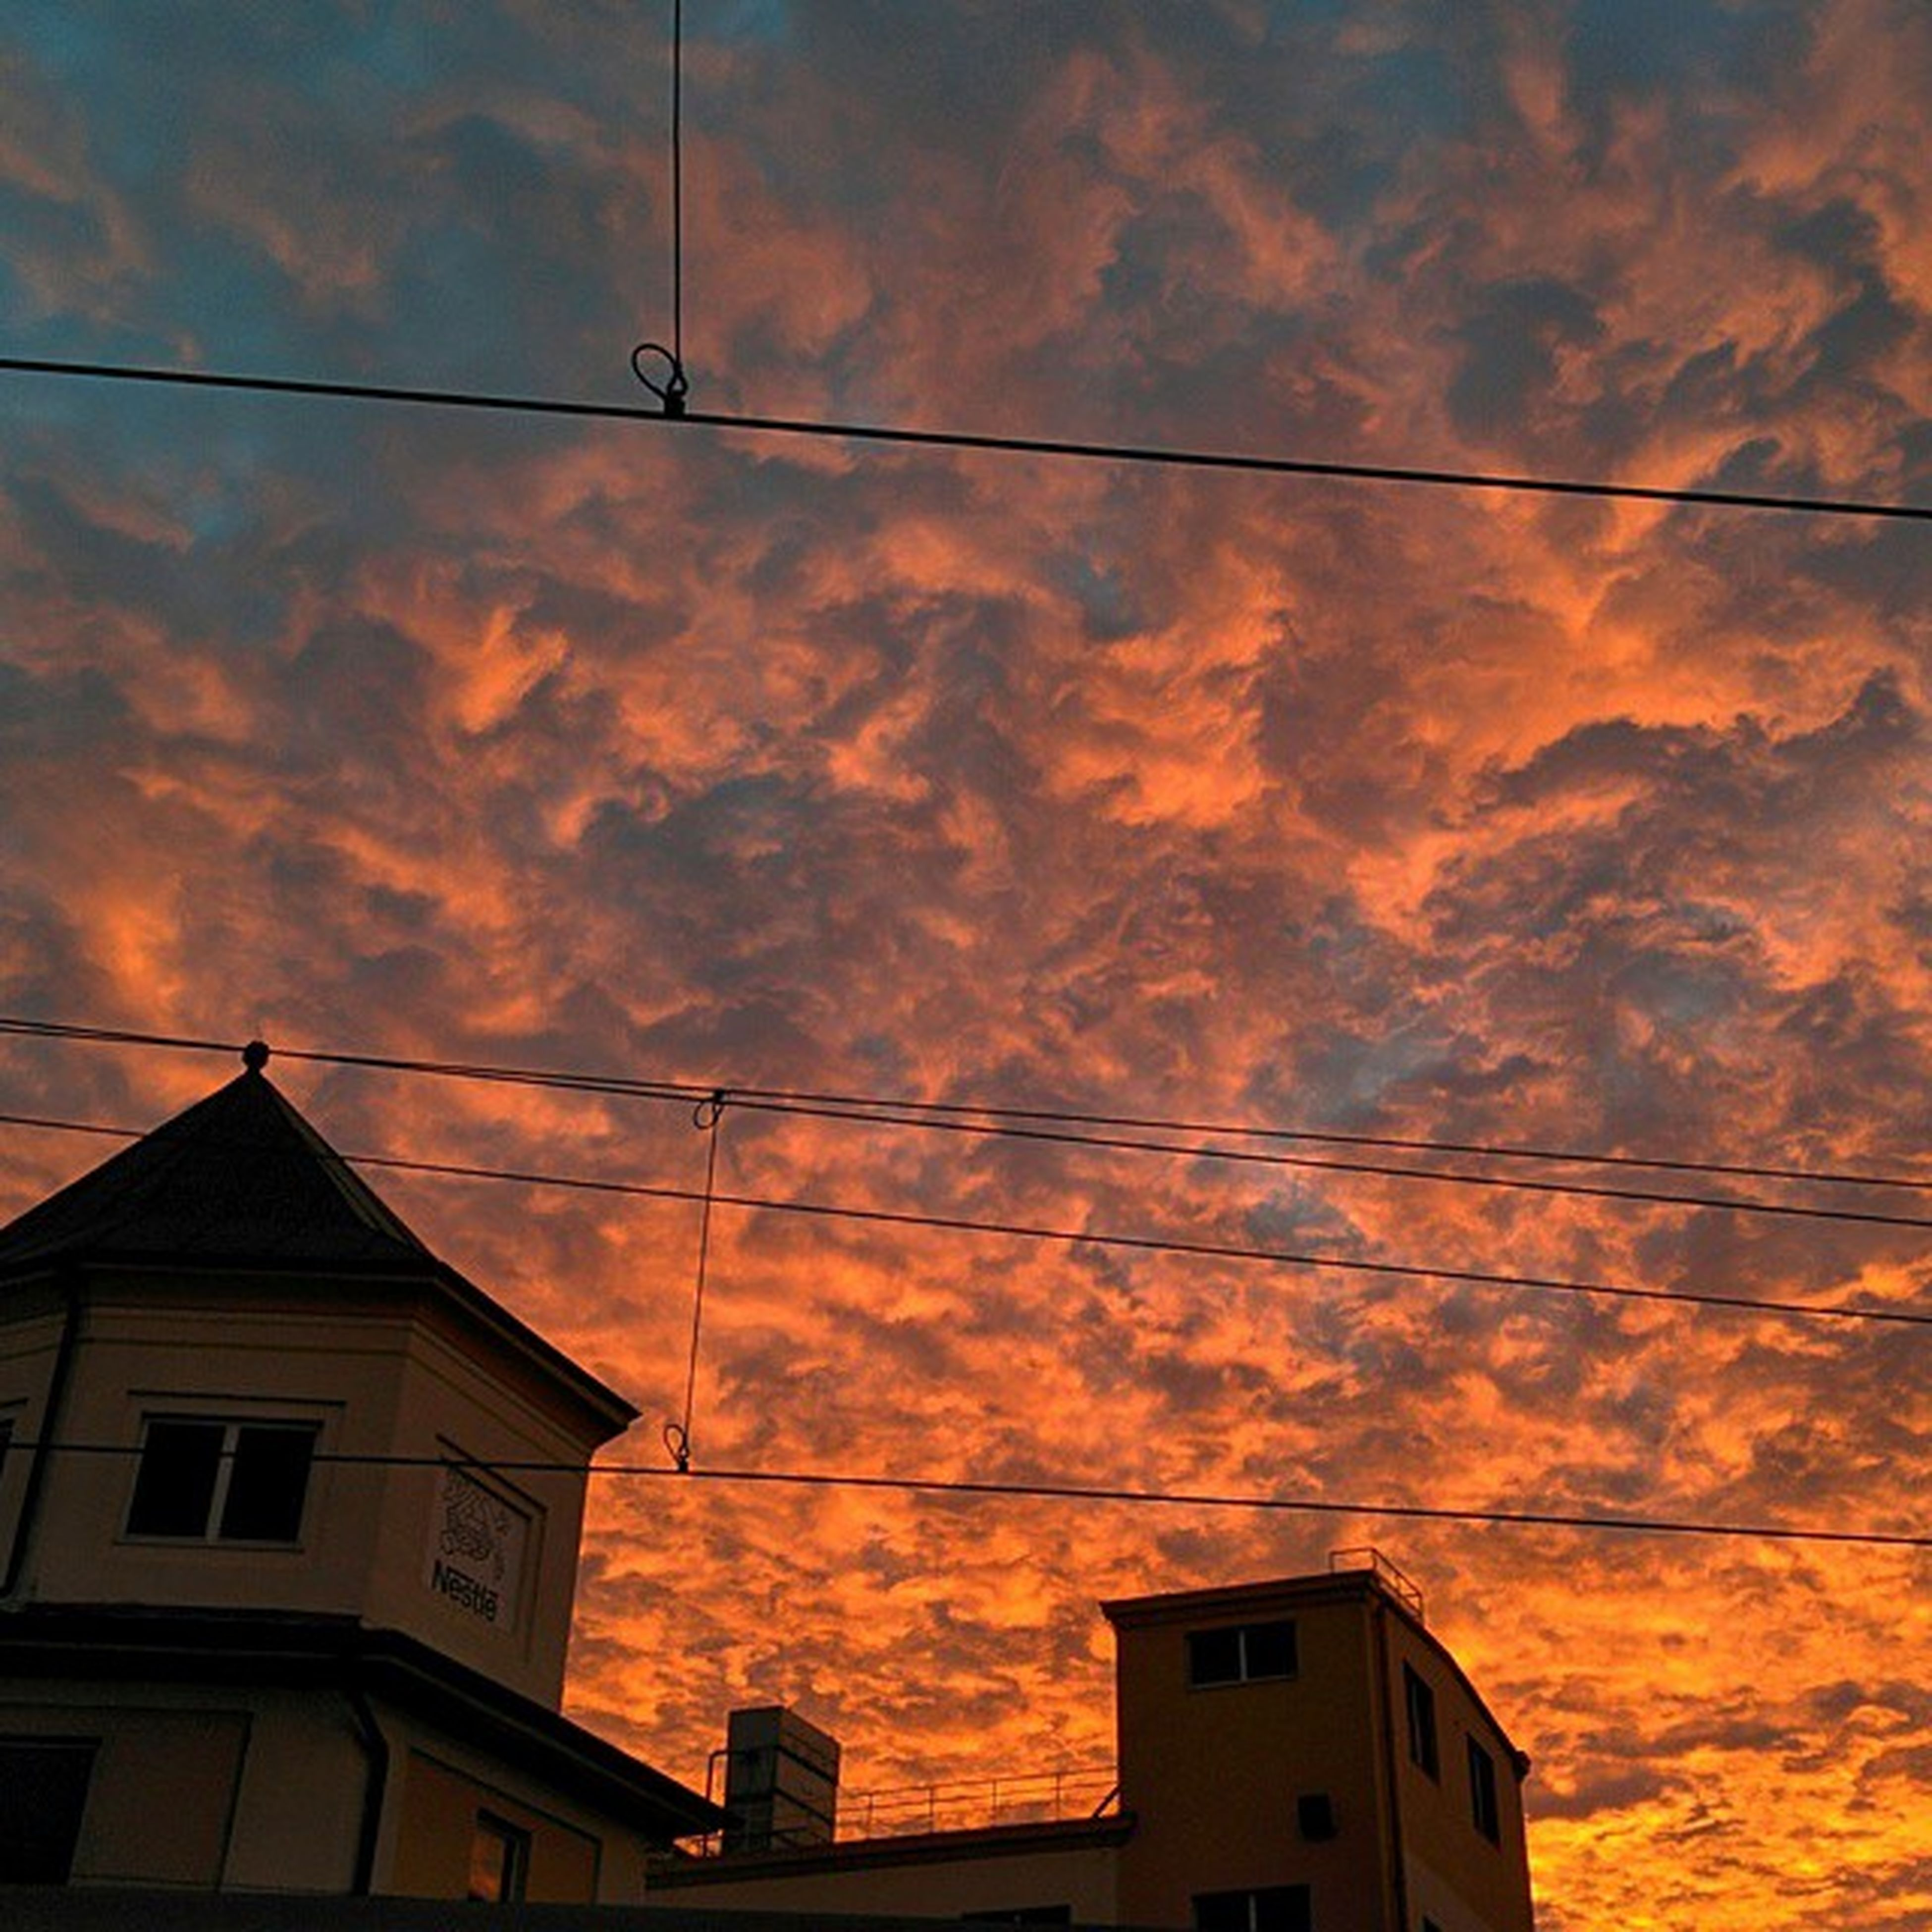 architecture, building exterior, built structure, low angle view, sunset, sky, cloud - sky, orange color, house, power line, high section, residential structure, cloudy, cloud, residential building, silhouette, building, cable, outdoors, no people